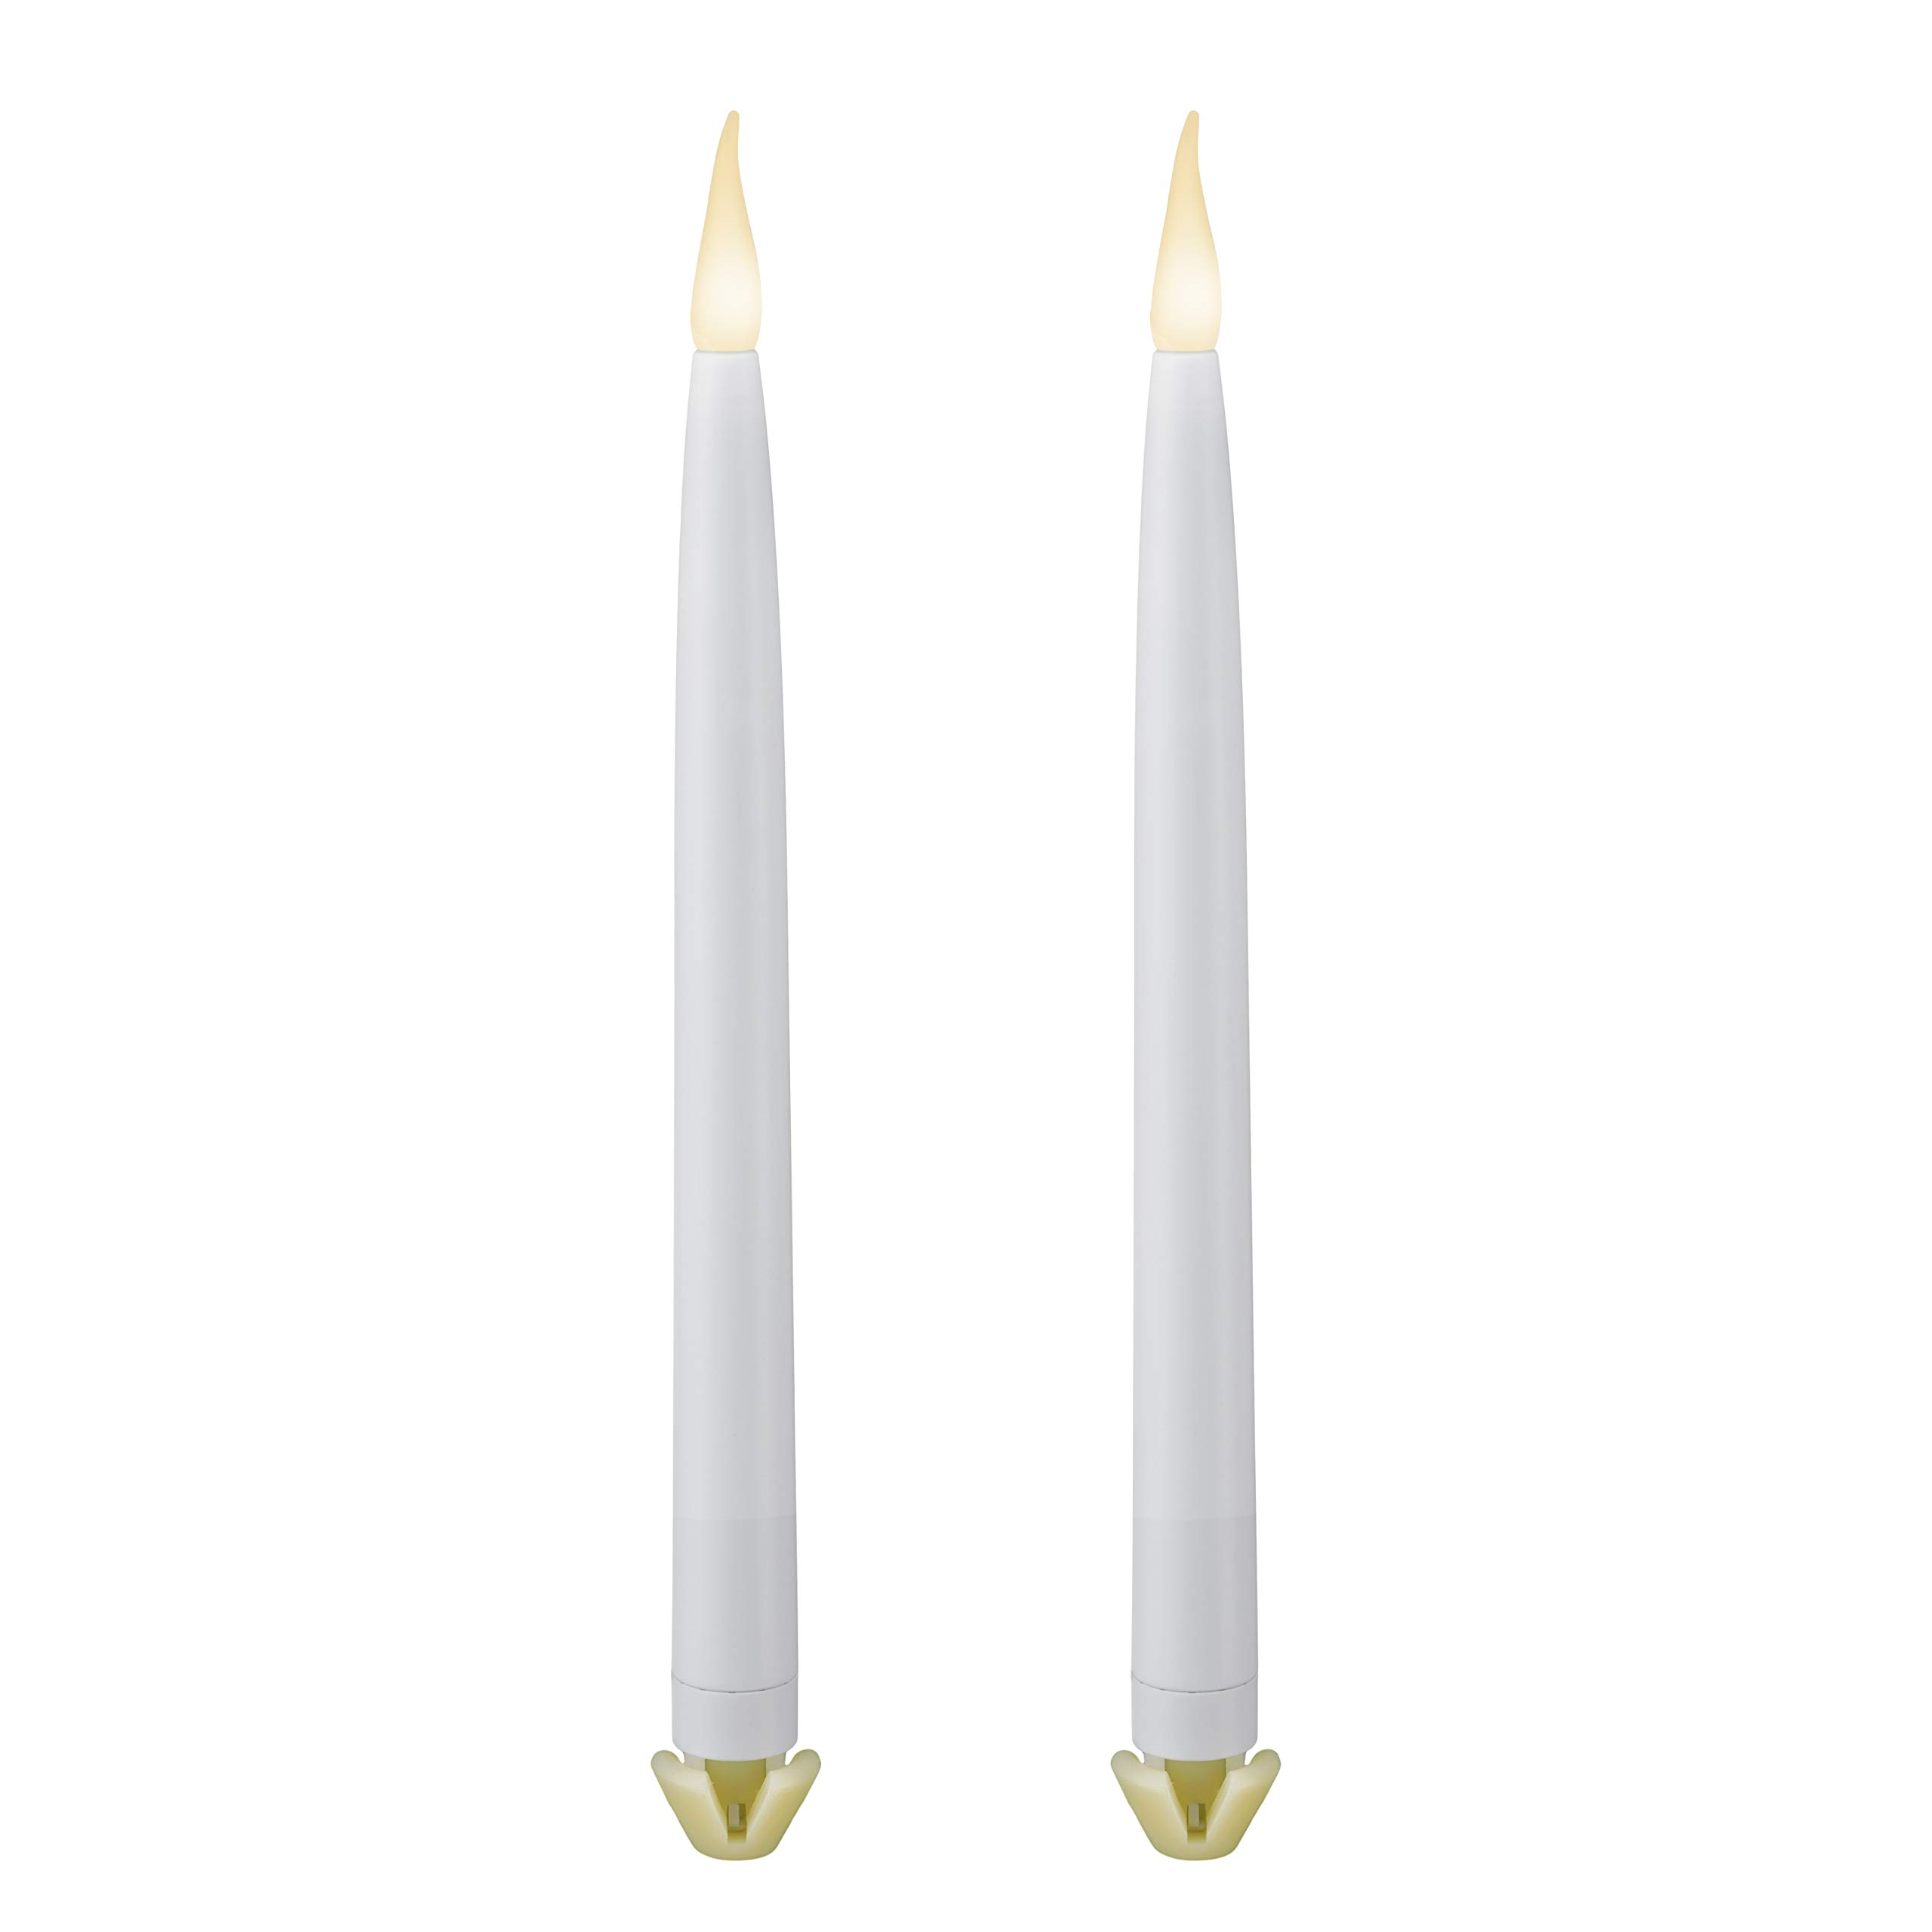 612 Vermont 11 3/4'' LED Taper Candles Battery Operated with Gripper Base, Timer, Patented Warm White Dual LED Flicker Flame (Pack of 2) by 612 Vermont